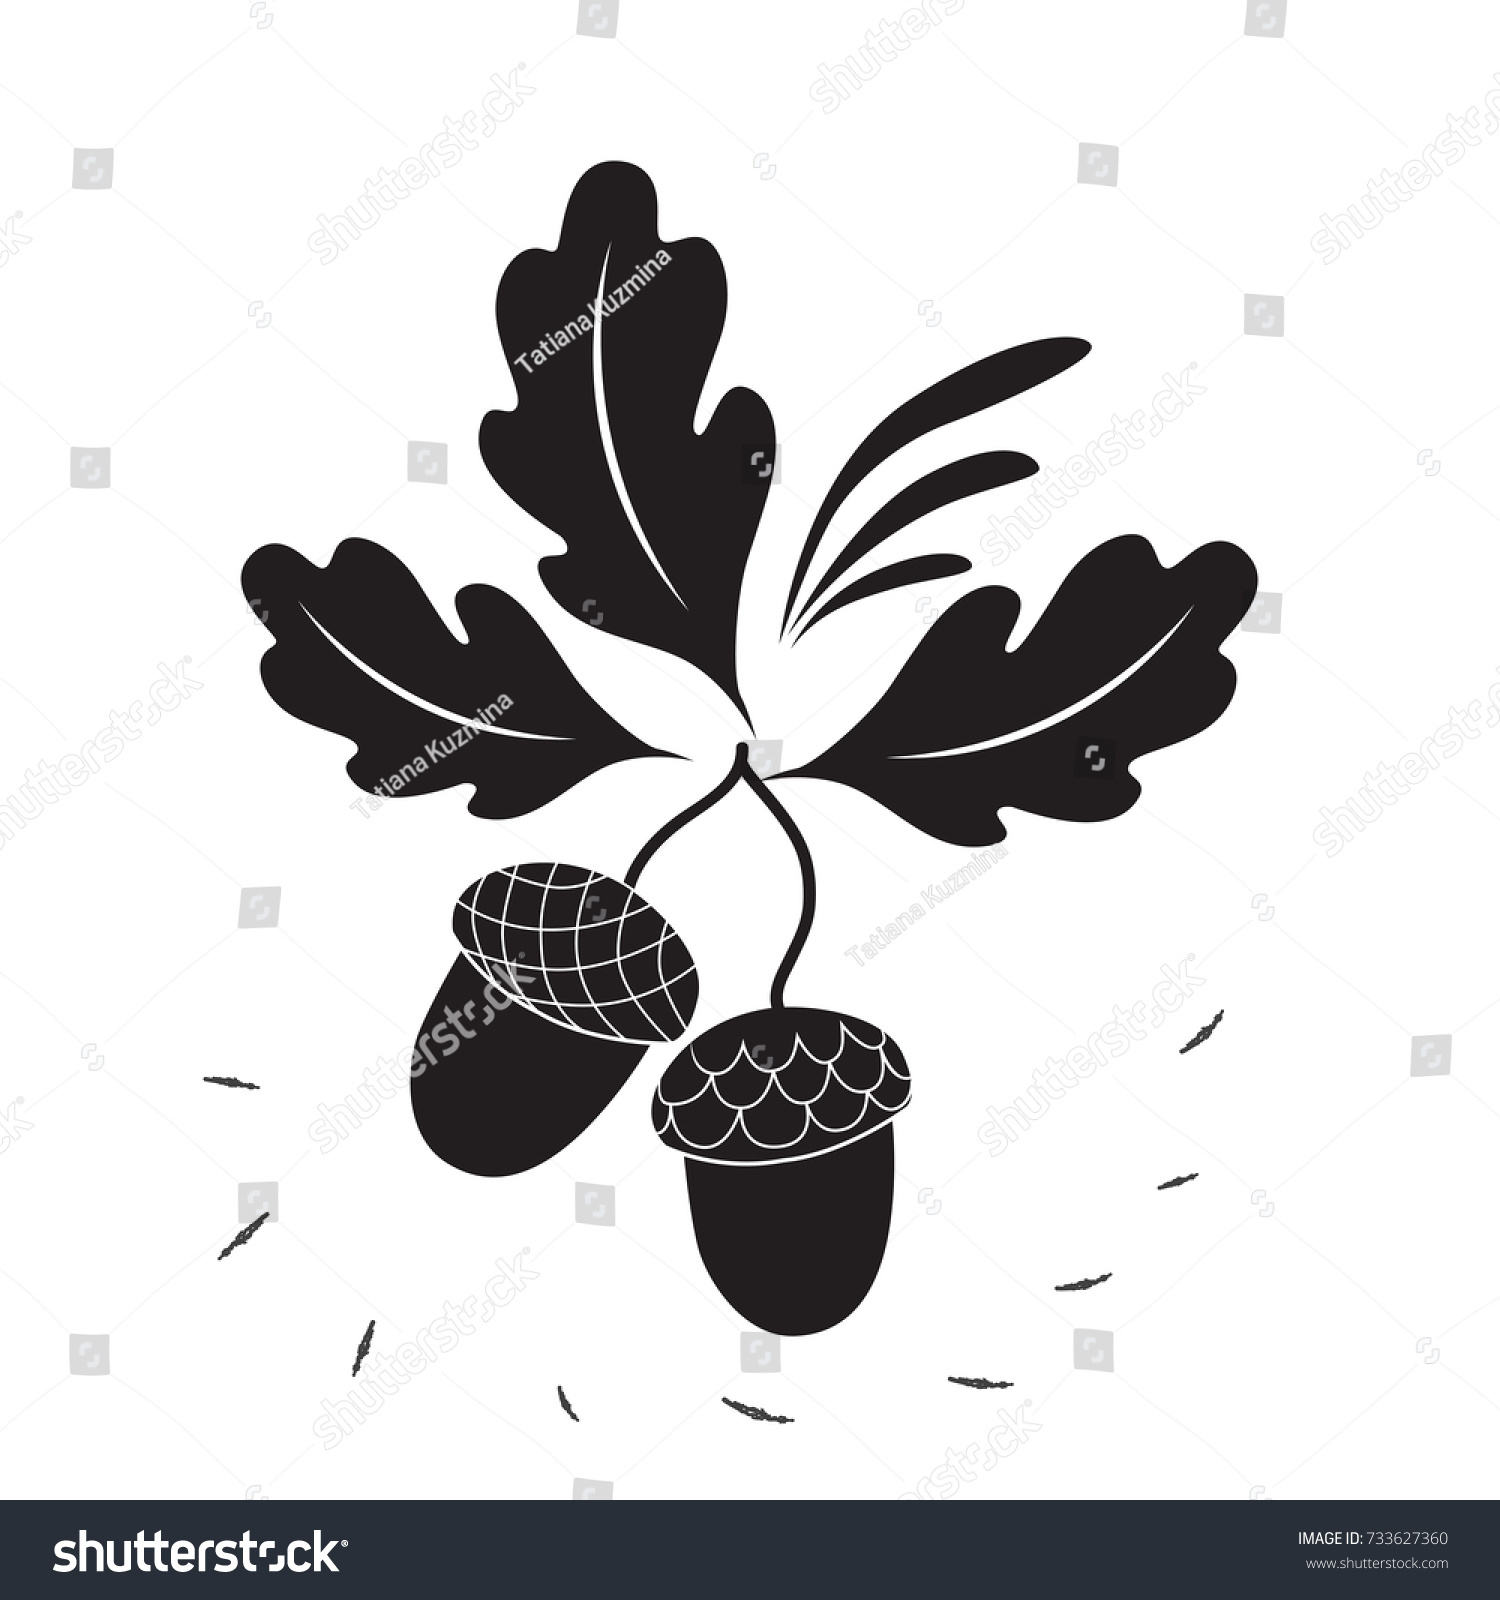 Acorns icon black style isolated on stock vector 733627360 acorns icon in black style isolated on white background canadian thanksgiving day symbol stock vector biocorpaavc Choice Image